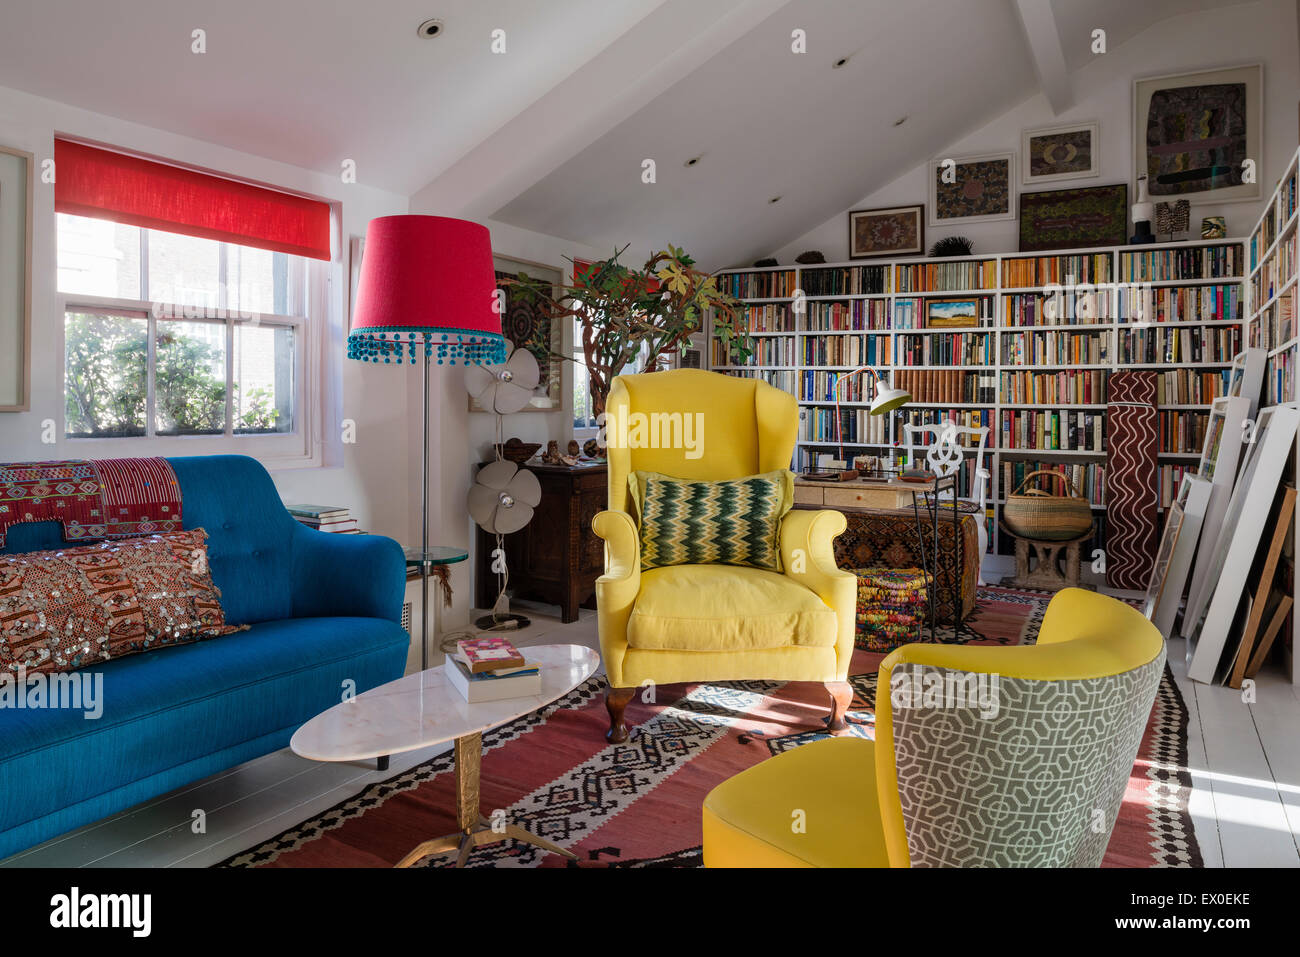 Groovy Yellow Winged Back Armchair Julep Chair And Bold Blue Sofa Gmtry Best Dining Table And Chair Ideas Images Gmtryco